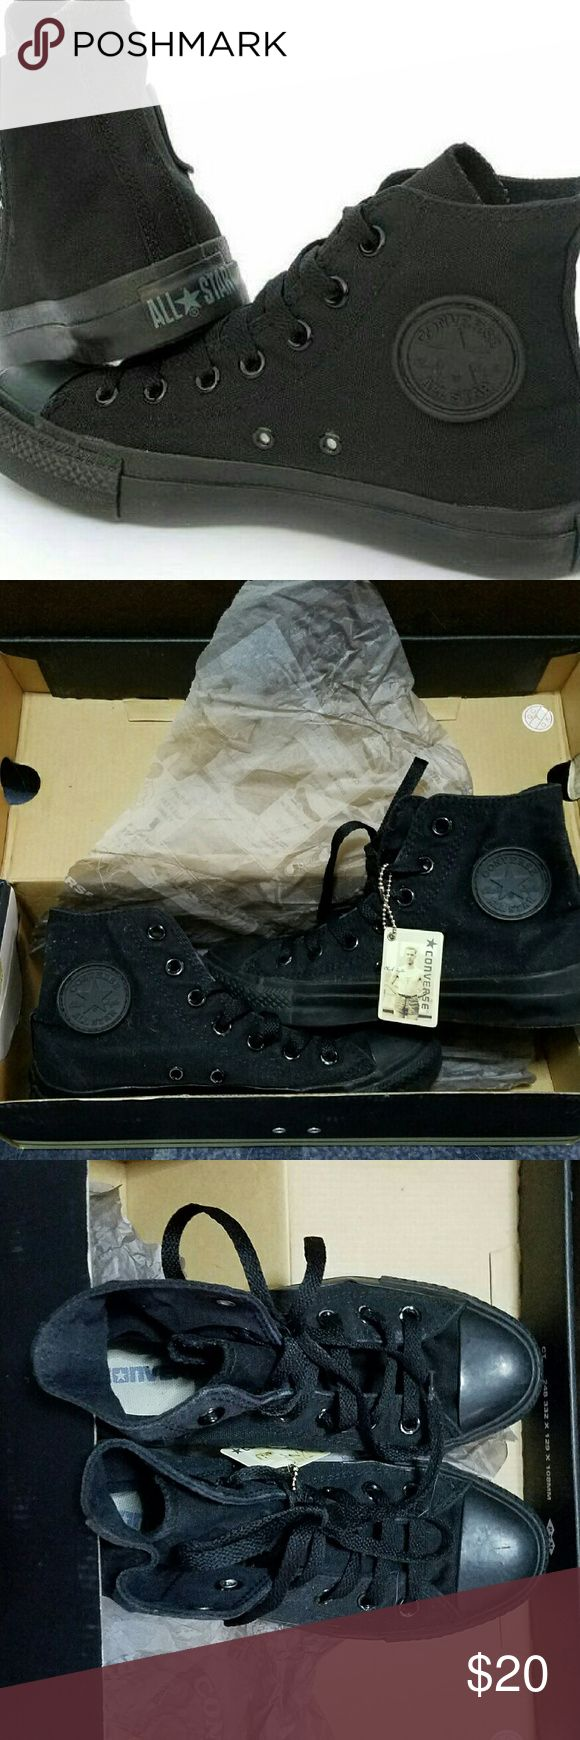 Converse Chuck Taylor All Stars black high tops ?       Great Condition!  ?       Color: Black  ?       Size: Men?s 3.5/Women's 5.5  ?       High tops lace up  ?       Comes with box   ?       No longer sold anywhere ? Retail price $45.00 Now on SALE! Converse Shoes Sneakers